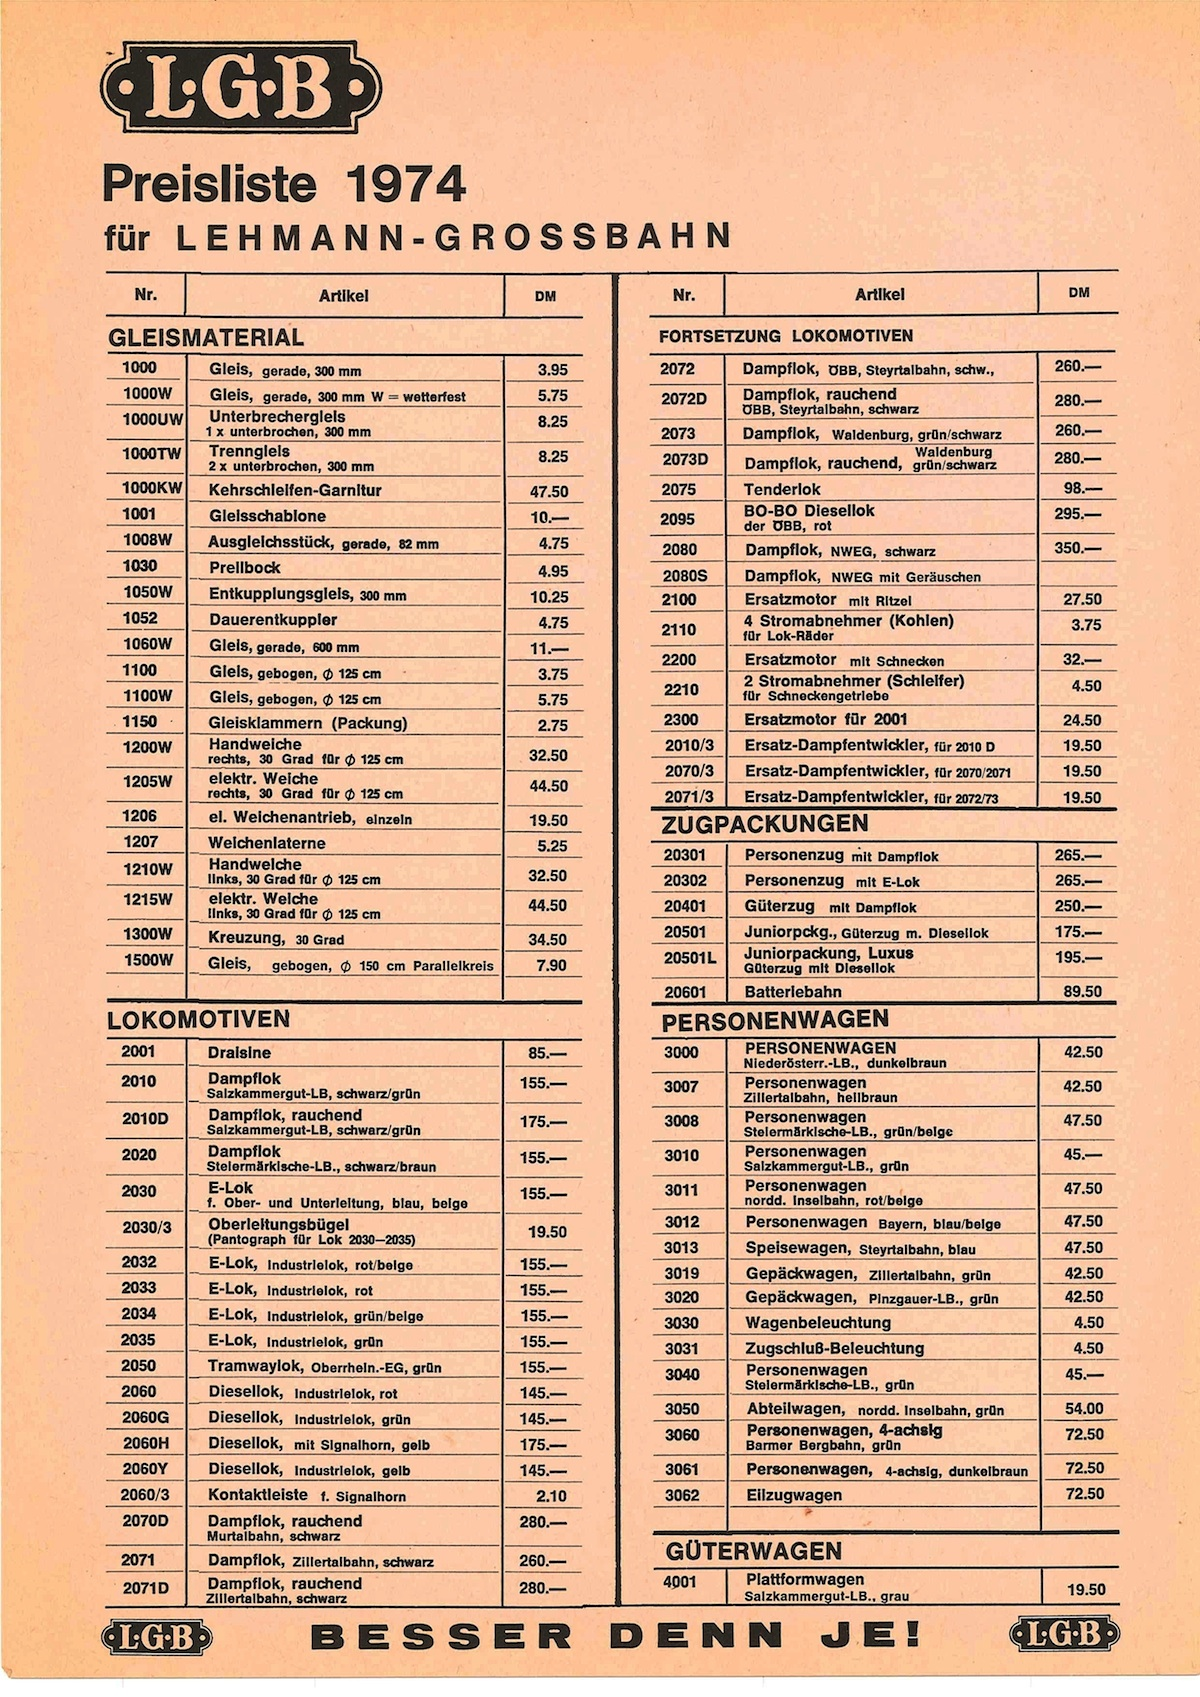 LGB Preisliste (Price list) 1974